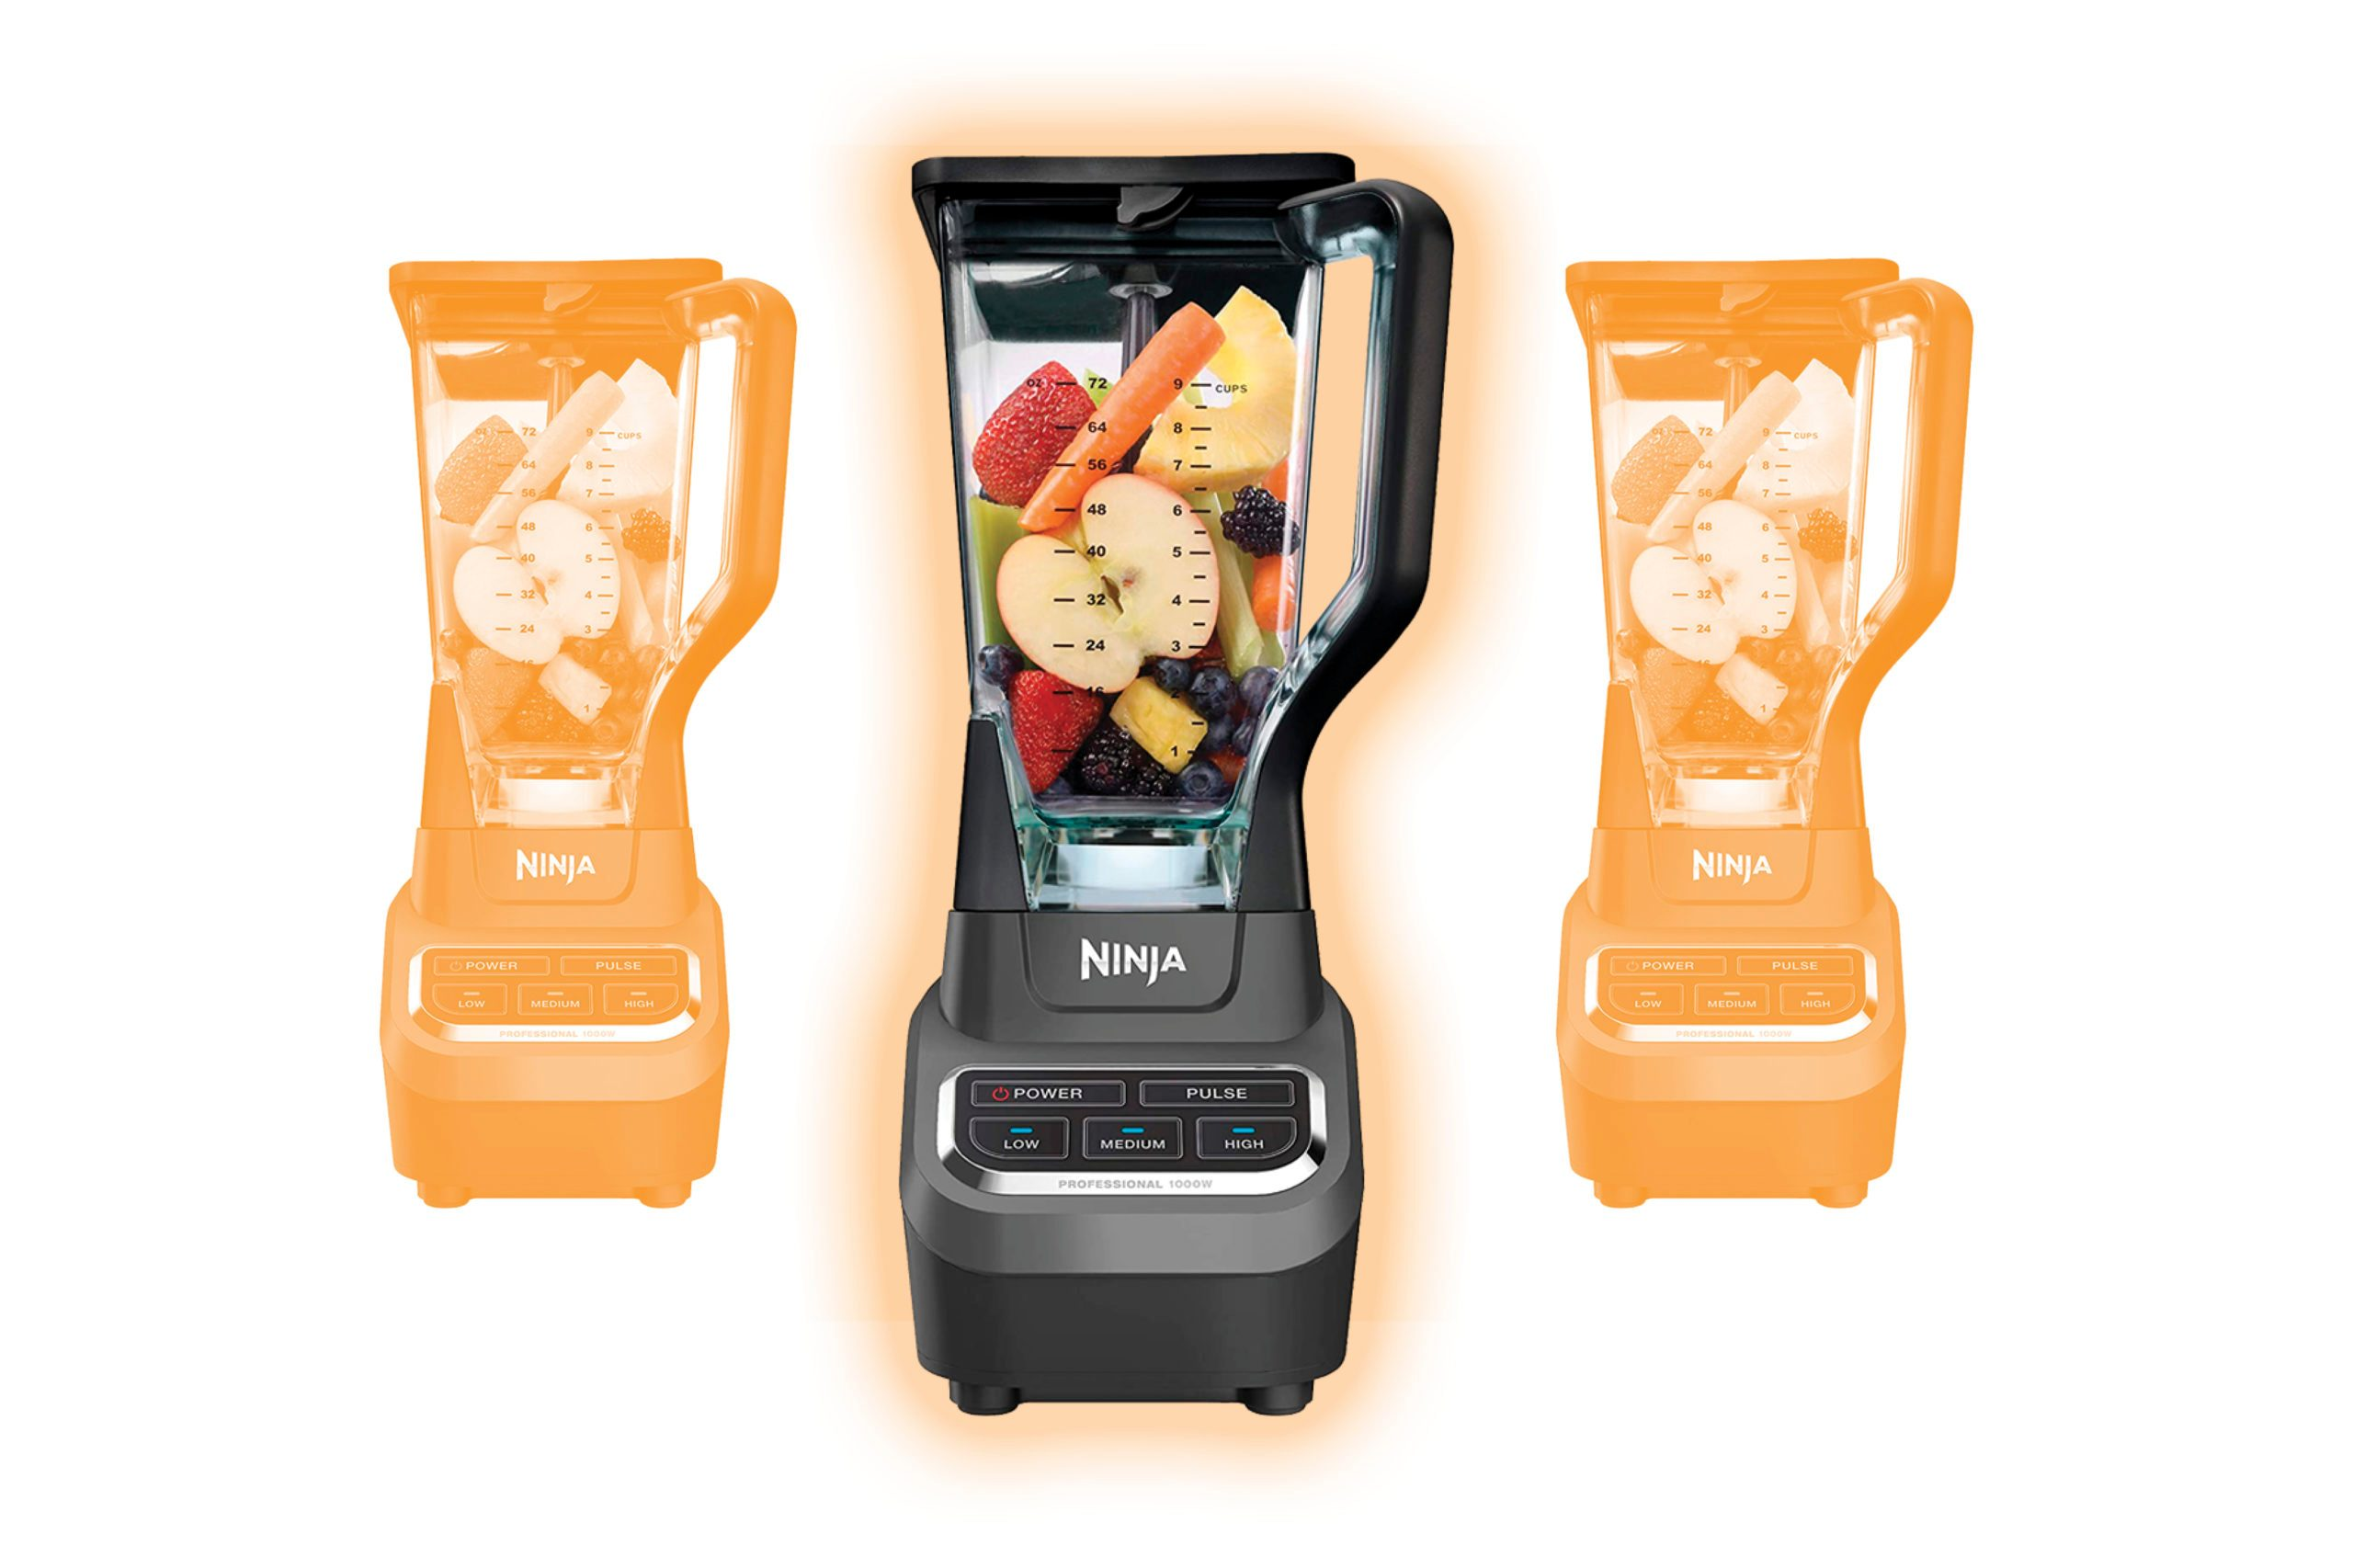 Ninja Professional 72 Oz Countertop Blender with 1000-Watt Base and Total Crushing Technology for Smoothies, Ice and Frozen Fruit (BL610), Black